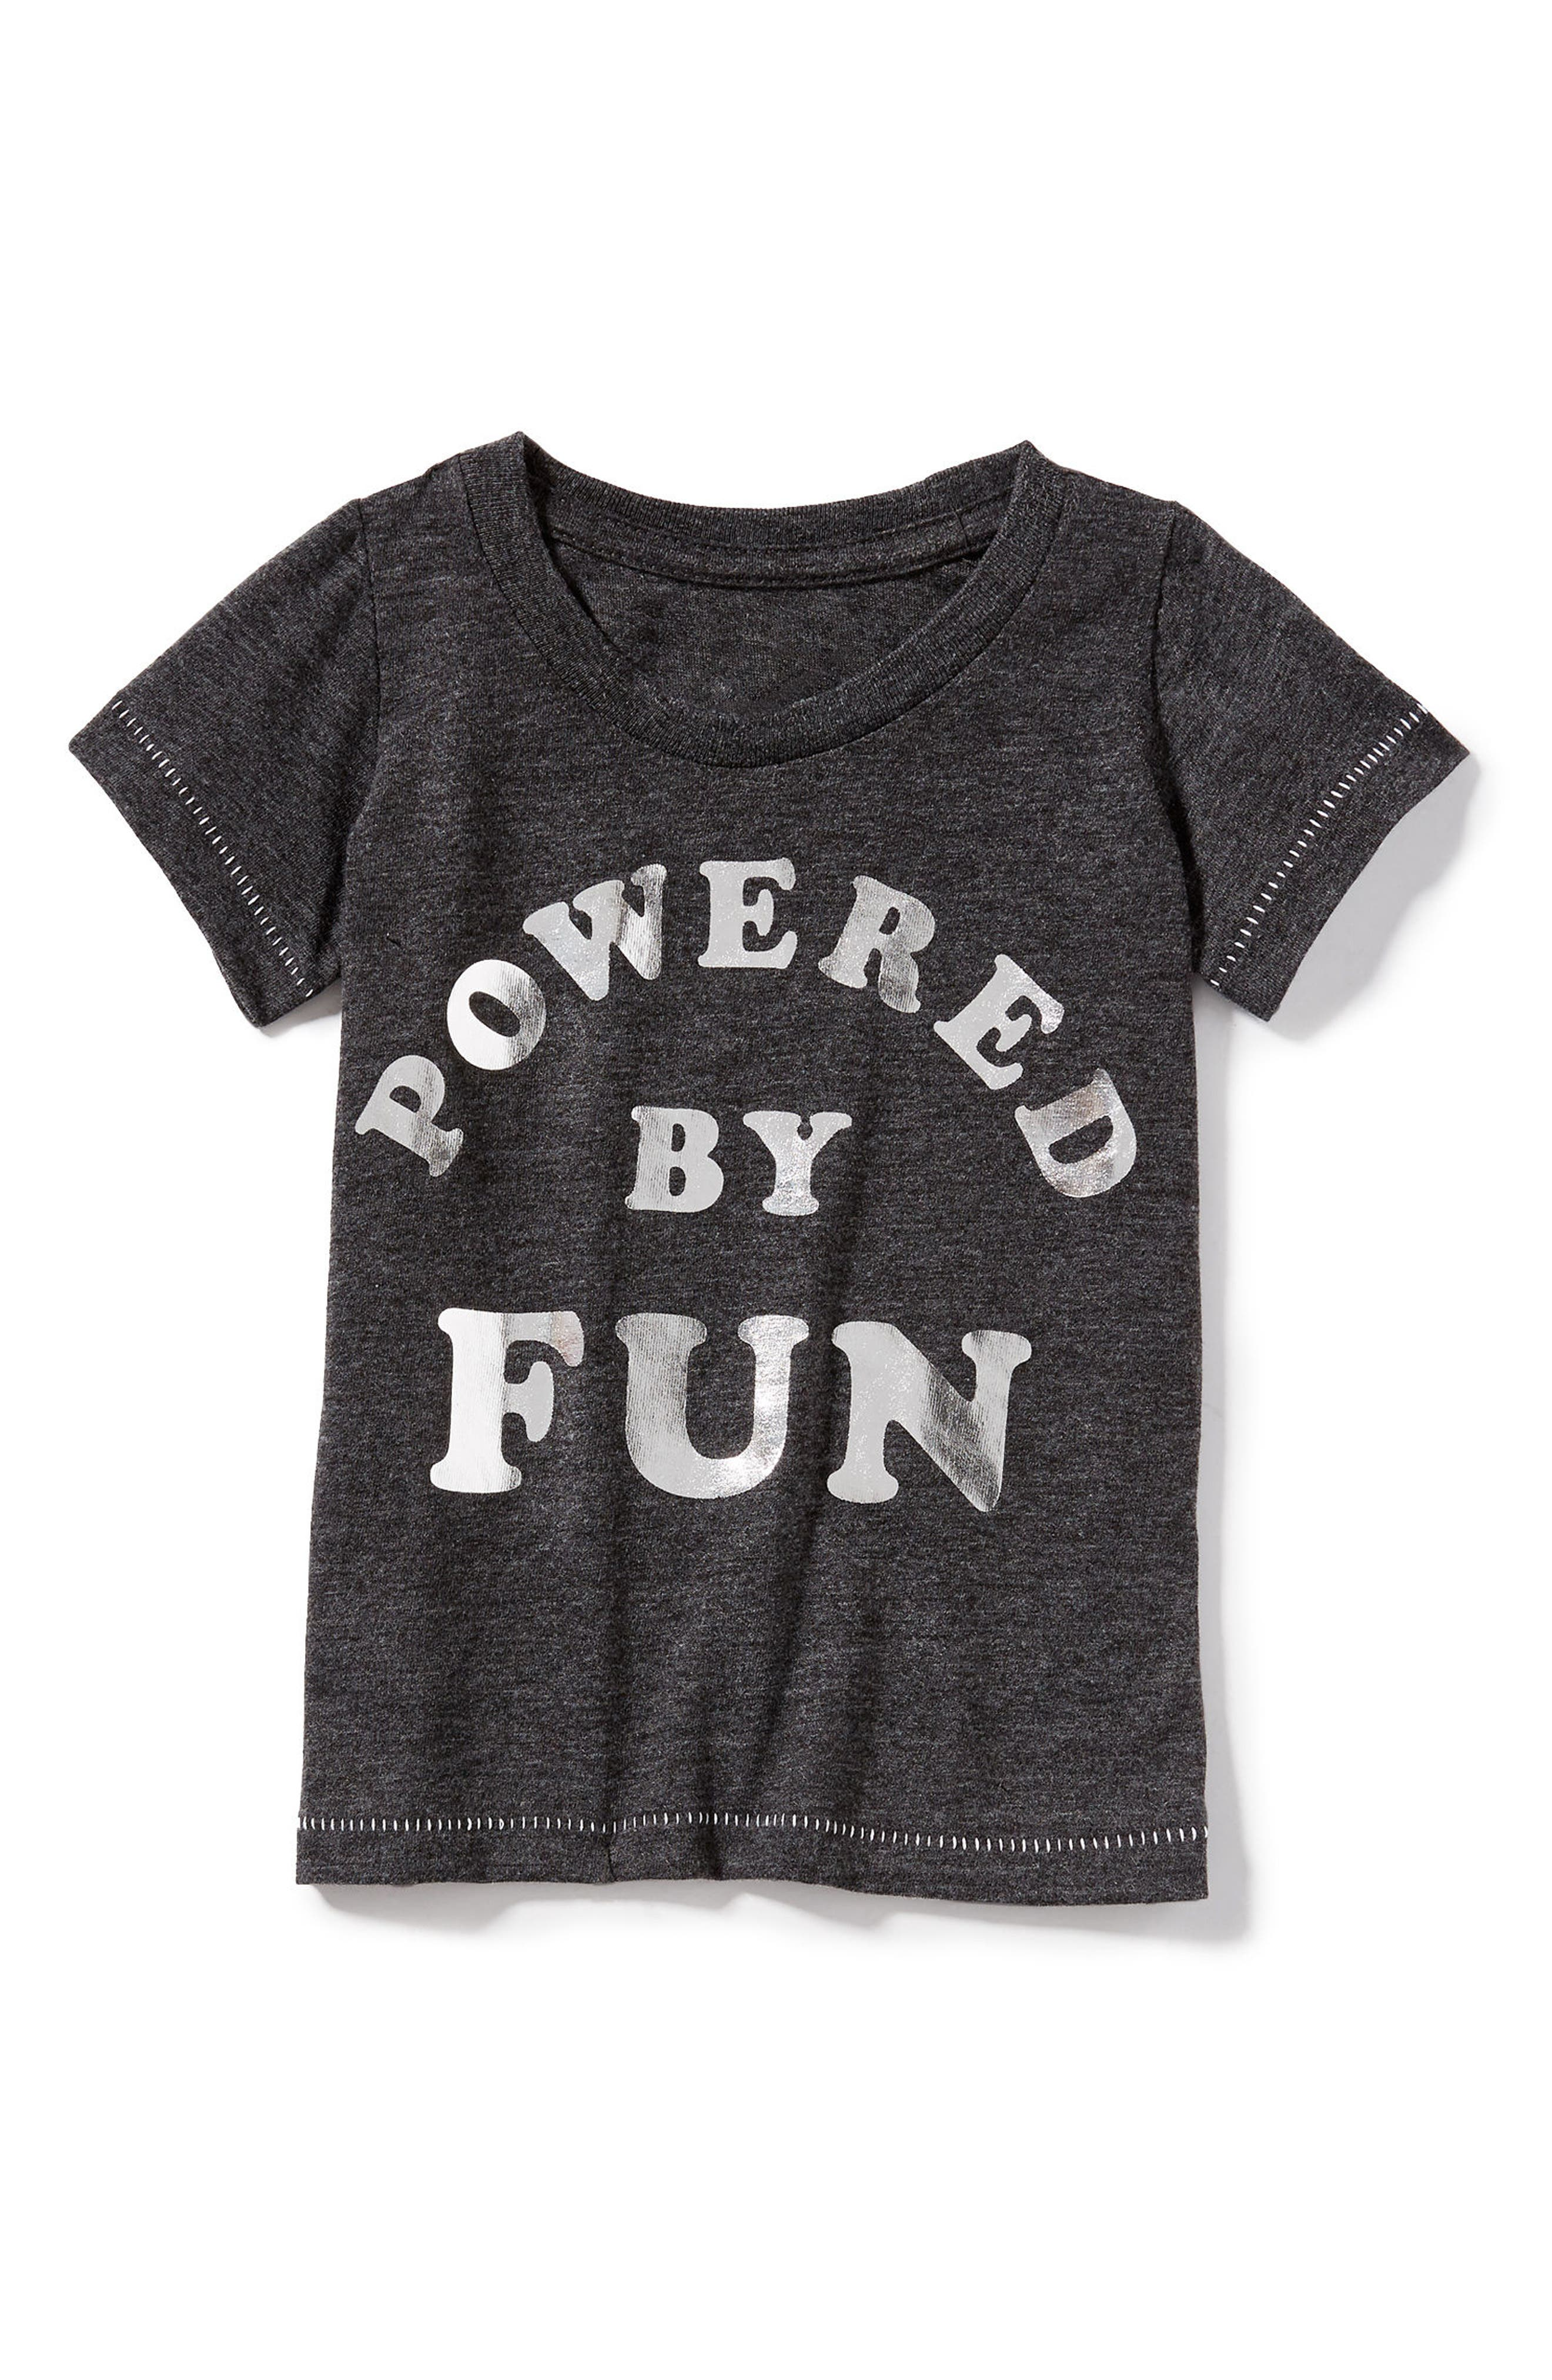 Powered By Fun Graphic Tee,                         Main,                         color, Charcoal